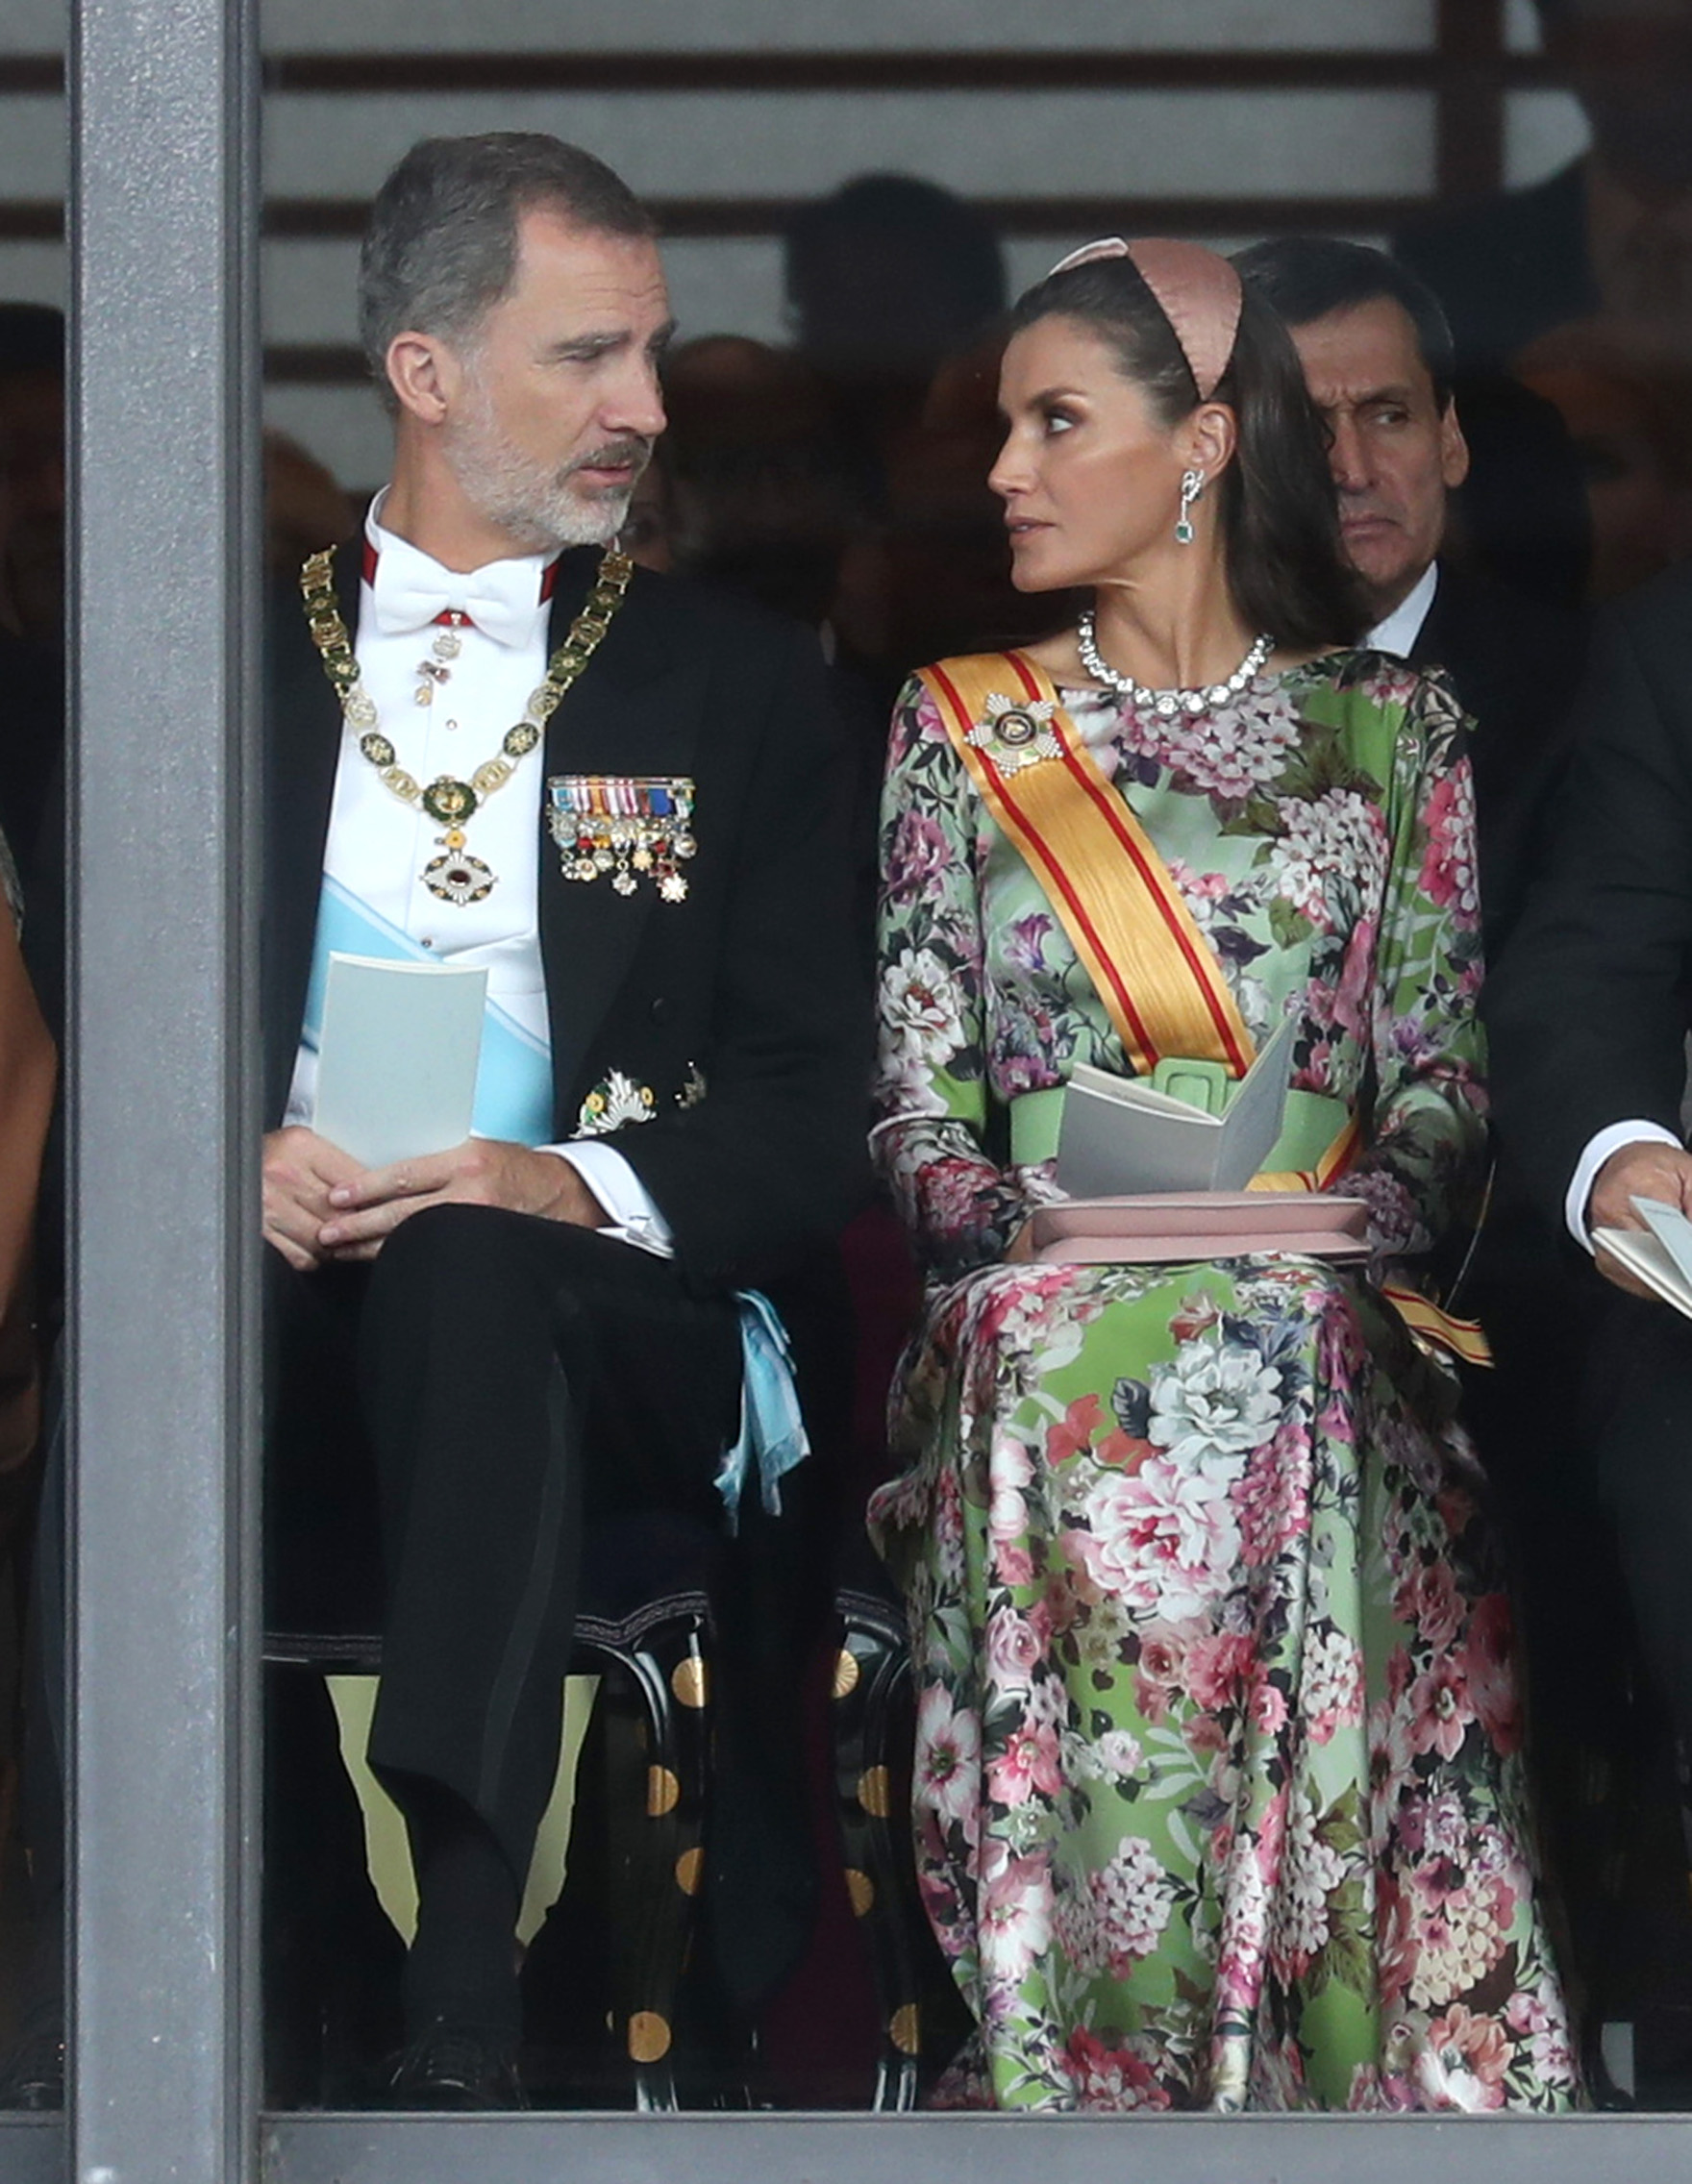 TOKYO, JAPAN - OCTOBER 22:  King Felipe VI of Spain and Queen Letizia of Spain attend the Enthronement Ceremony of Emperor Naruhito at the Imperial Palace on October 22, 2019 in Tokyo, Japan. (Photo by Chris Jackson - Pool/Getty Images)